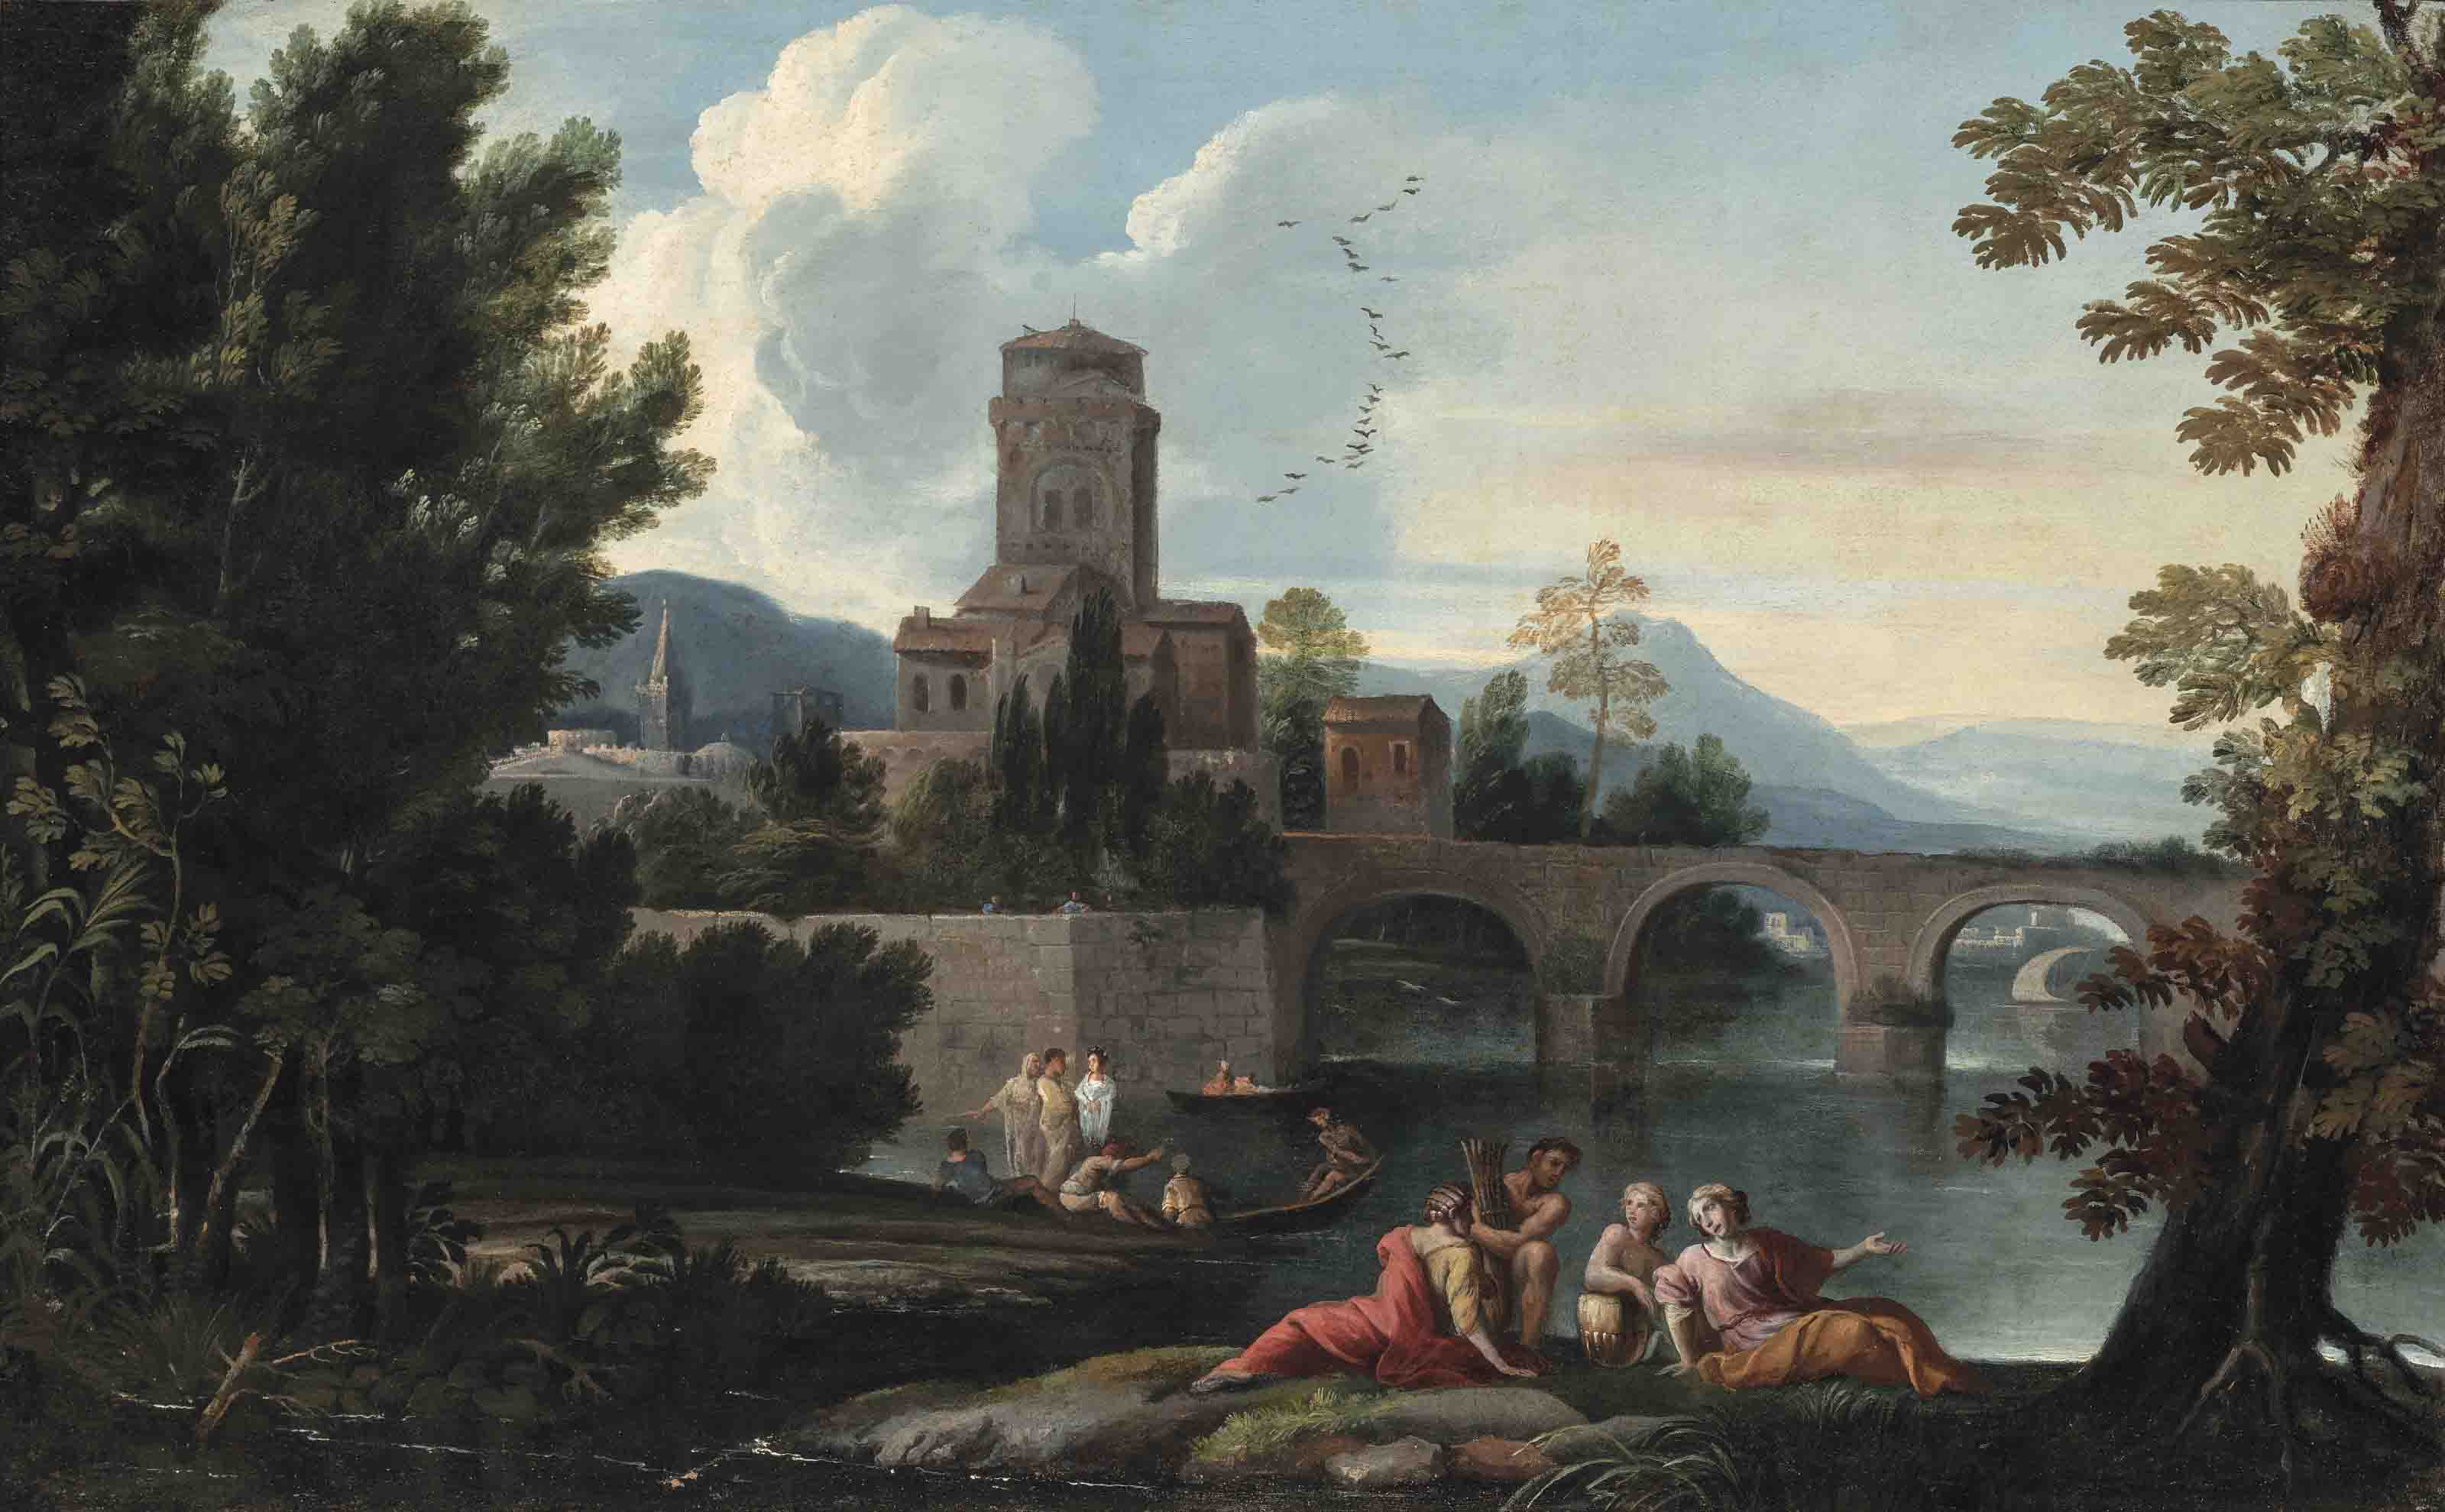 An Italianate landscape with figures before a town beside a river